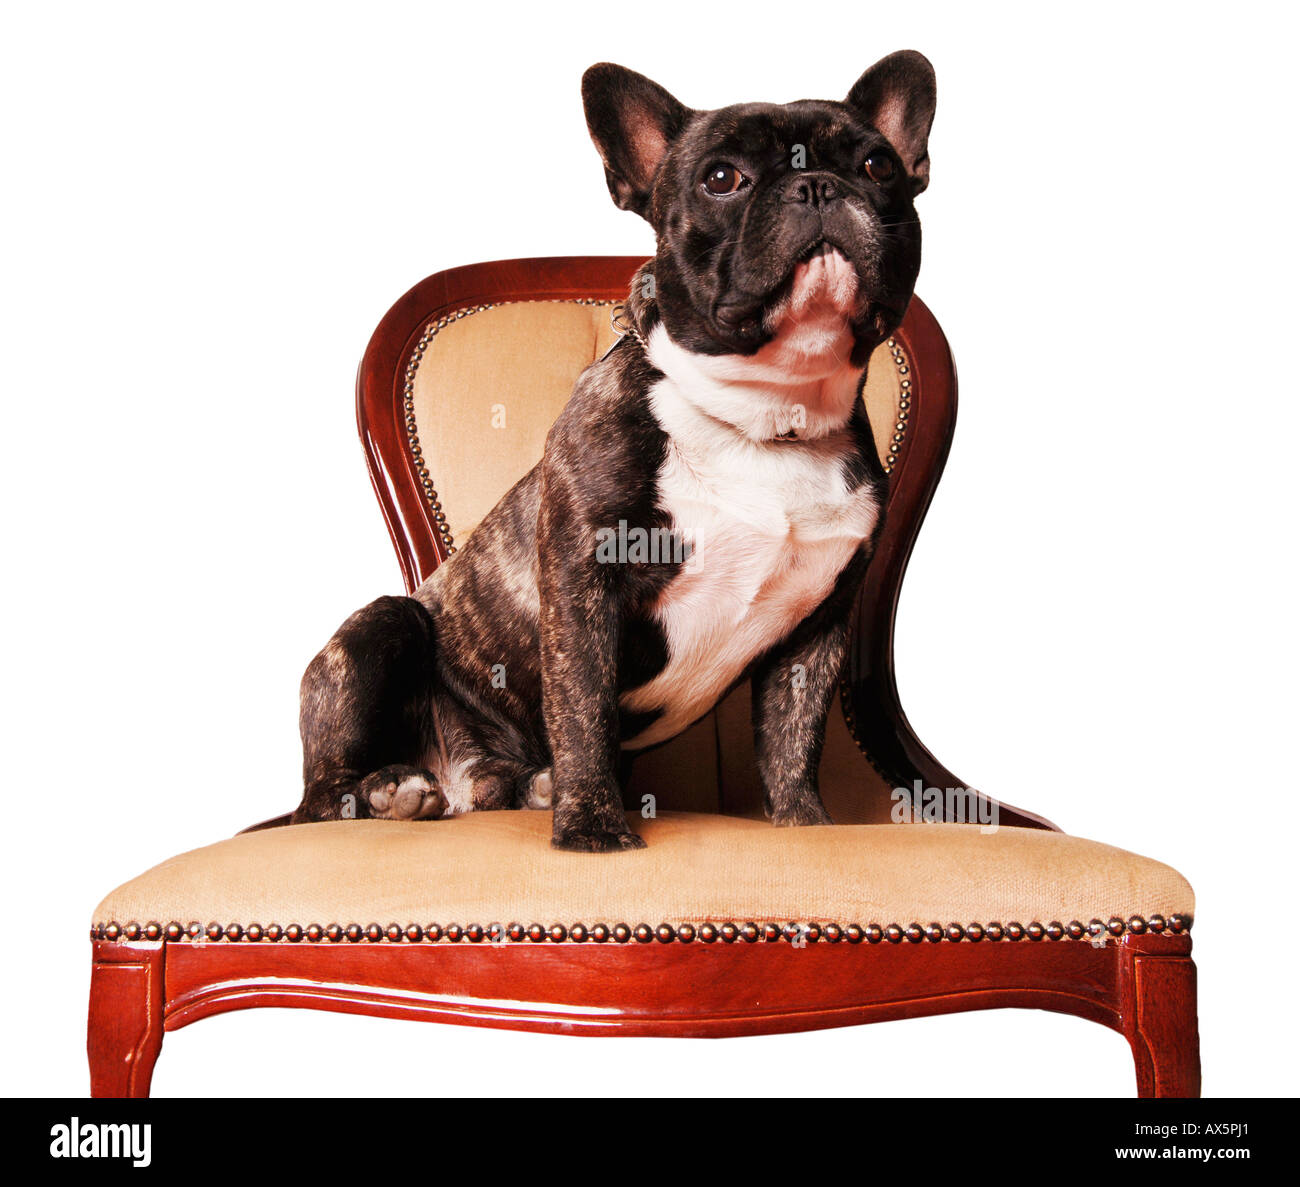 French bulldog sitting on chair - Stock Image